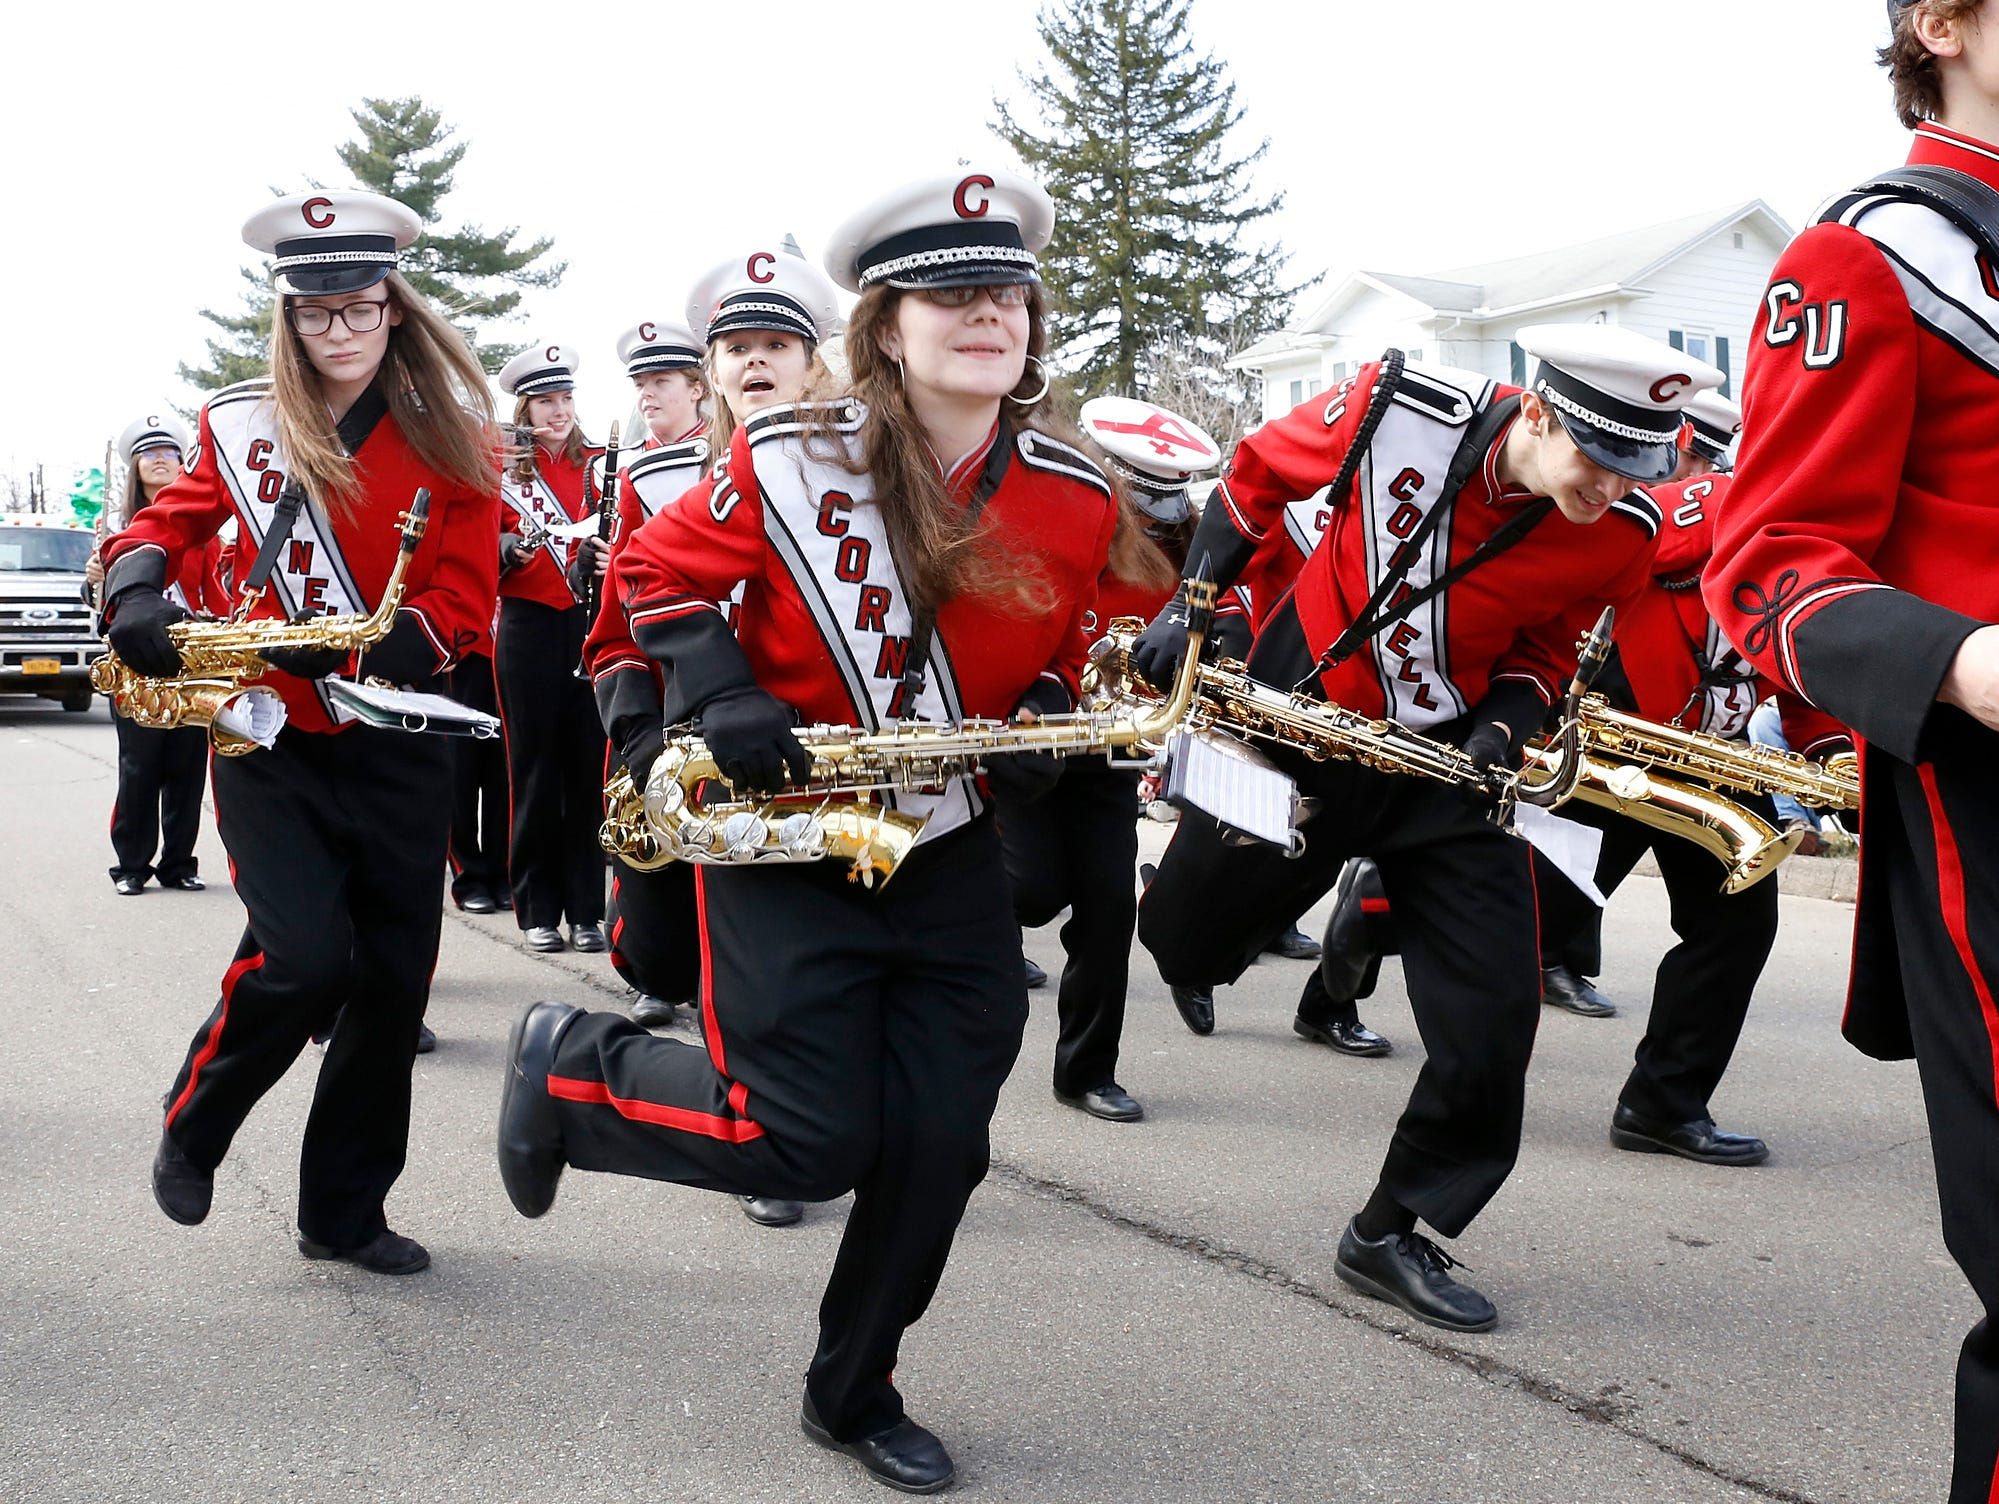 2016: While waiting for the parade train to move forward, the saxophone section of the Cornell University Big Red Marching Band moves to a choreographed dance Saturday at the St. Patrick's Day Parade in Horseheads.